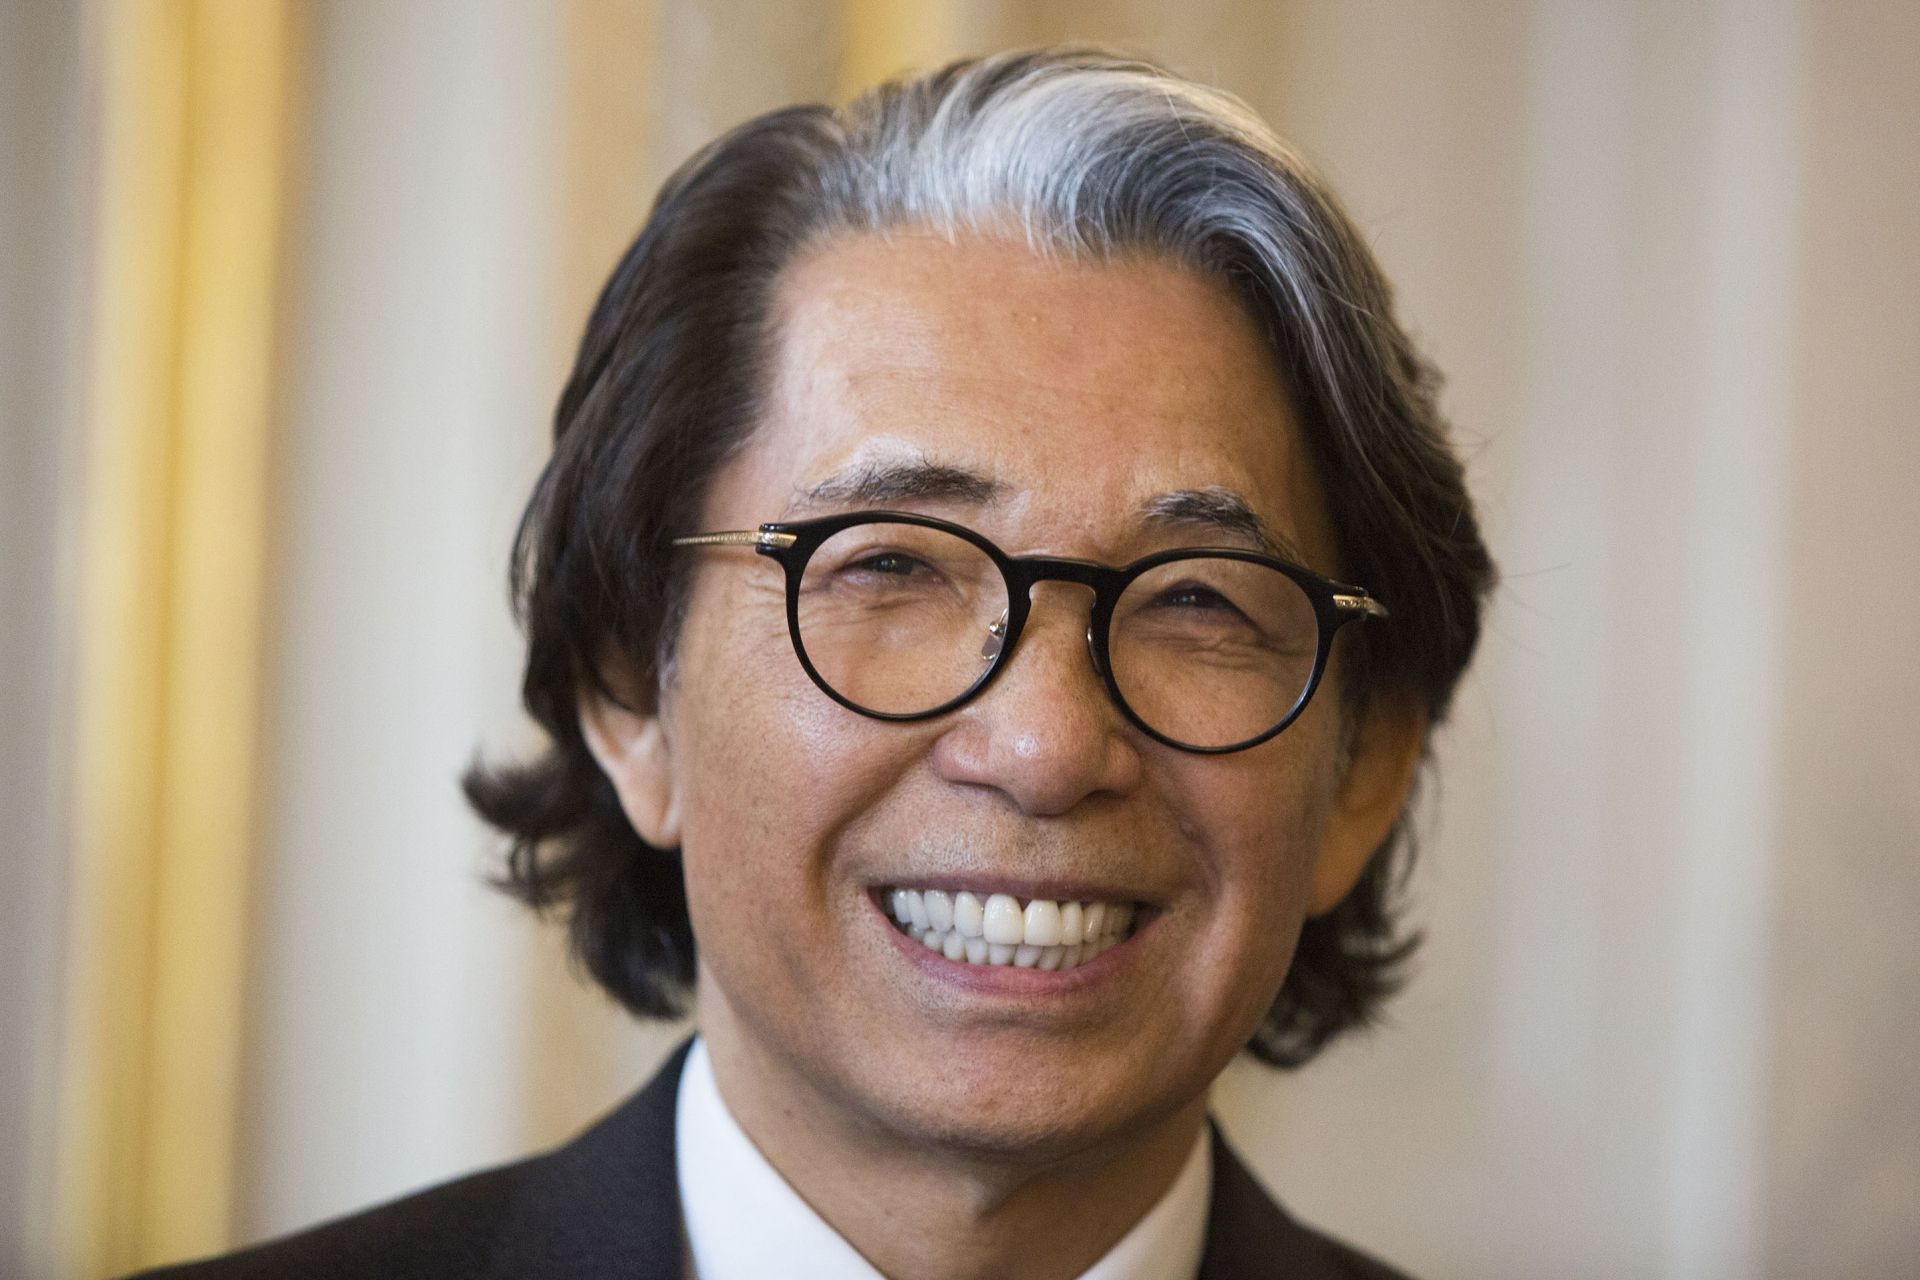 Japanese fashion designer Kenzo Takada smiles after being awarded Chevalier de la LÈgion d'Honneur (Knight of the Legion of Honour) by President of the French Constitutional Council, in Paris, on June 02, 2016.Kenzo Takada, 77, is the founder of the Kenzo brand.  / AFP PHOTO / Geoffroy Van der Hasselt